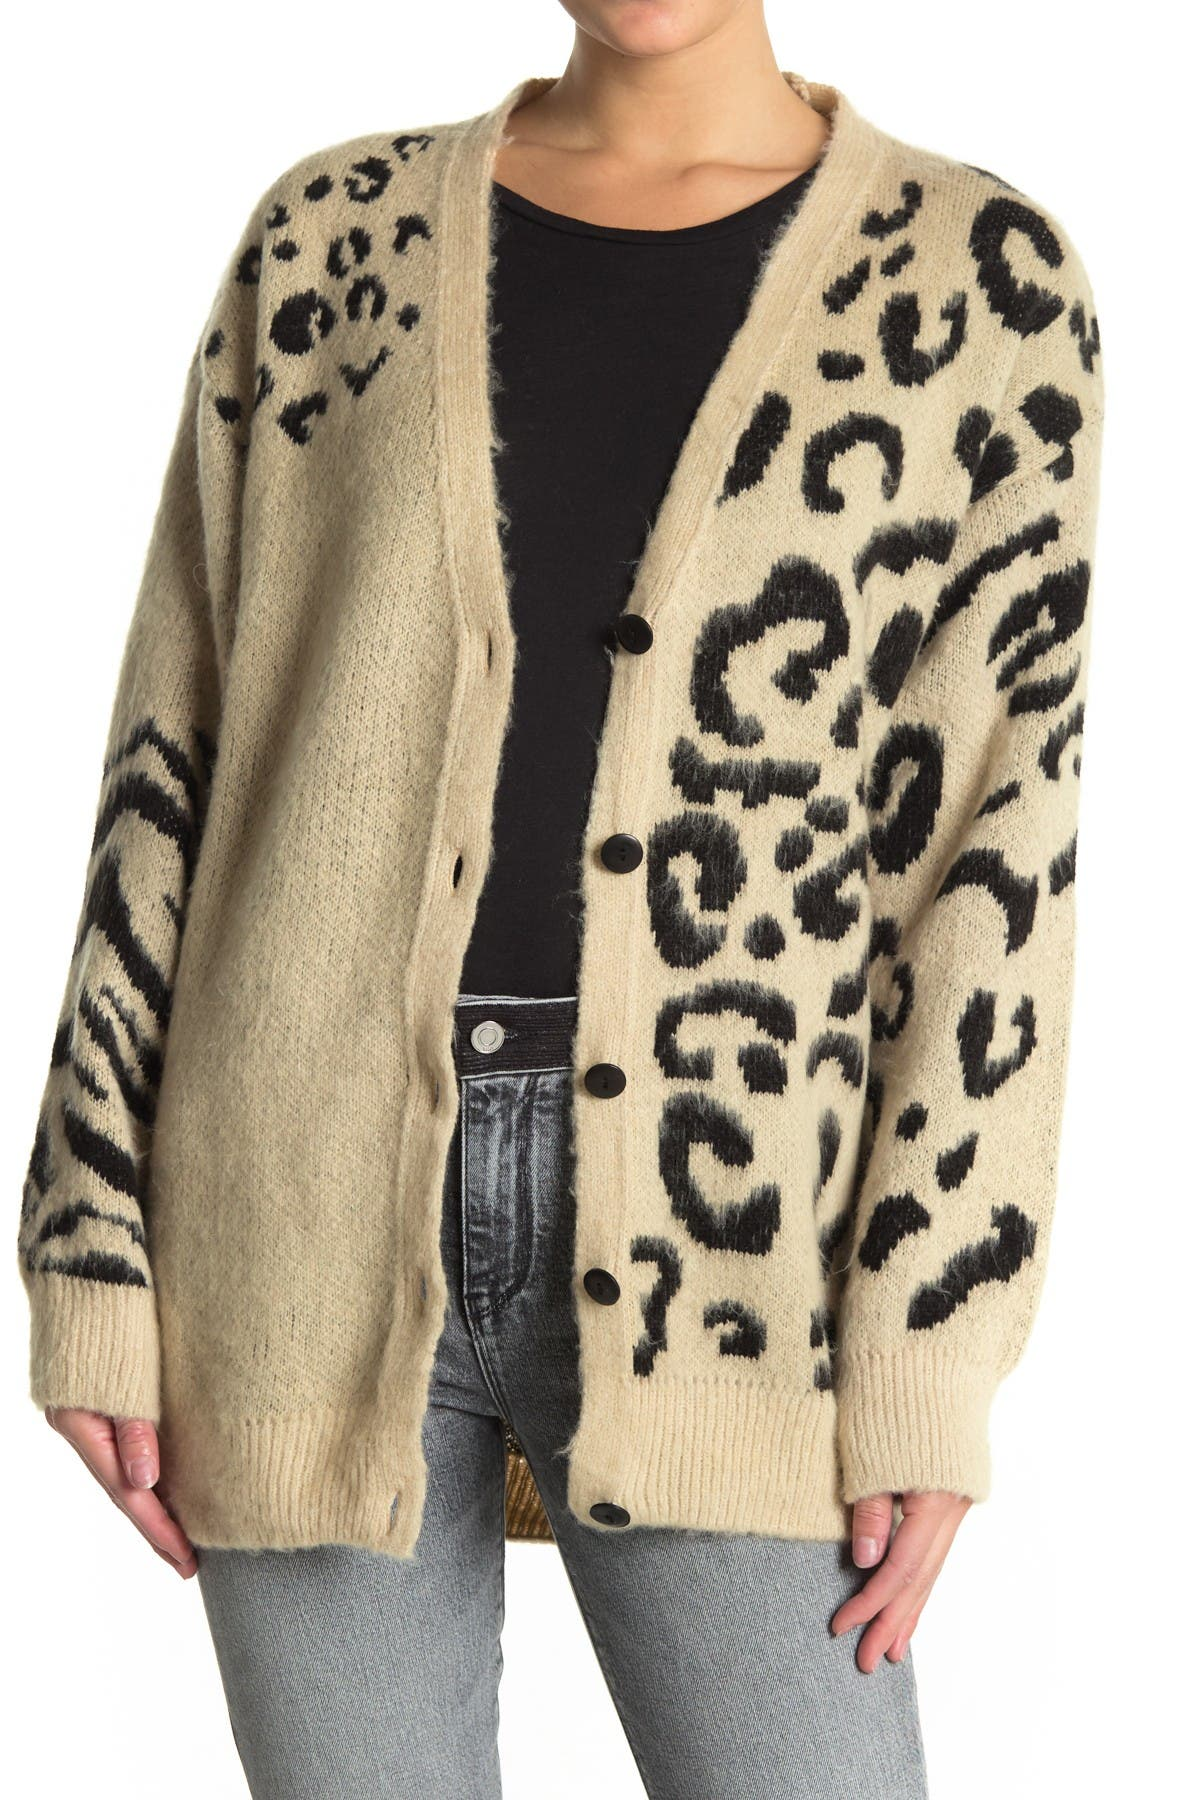 Image of TOPSHOP Leopard Printed Knit Cardigan